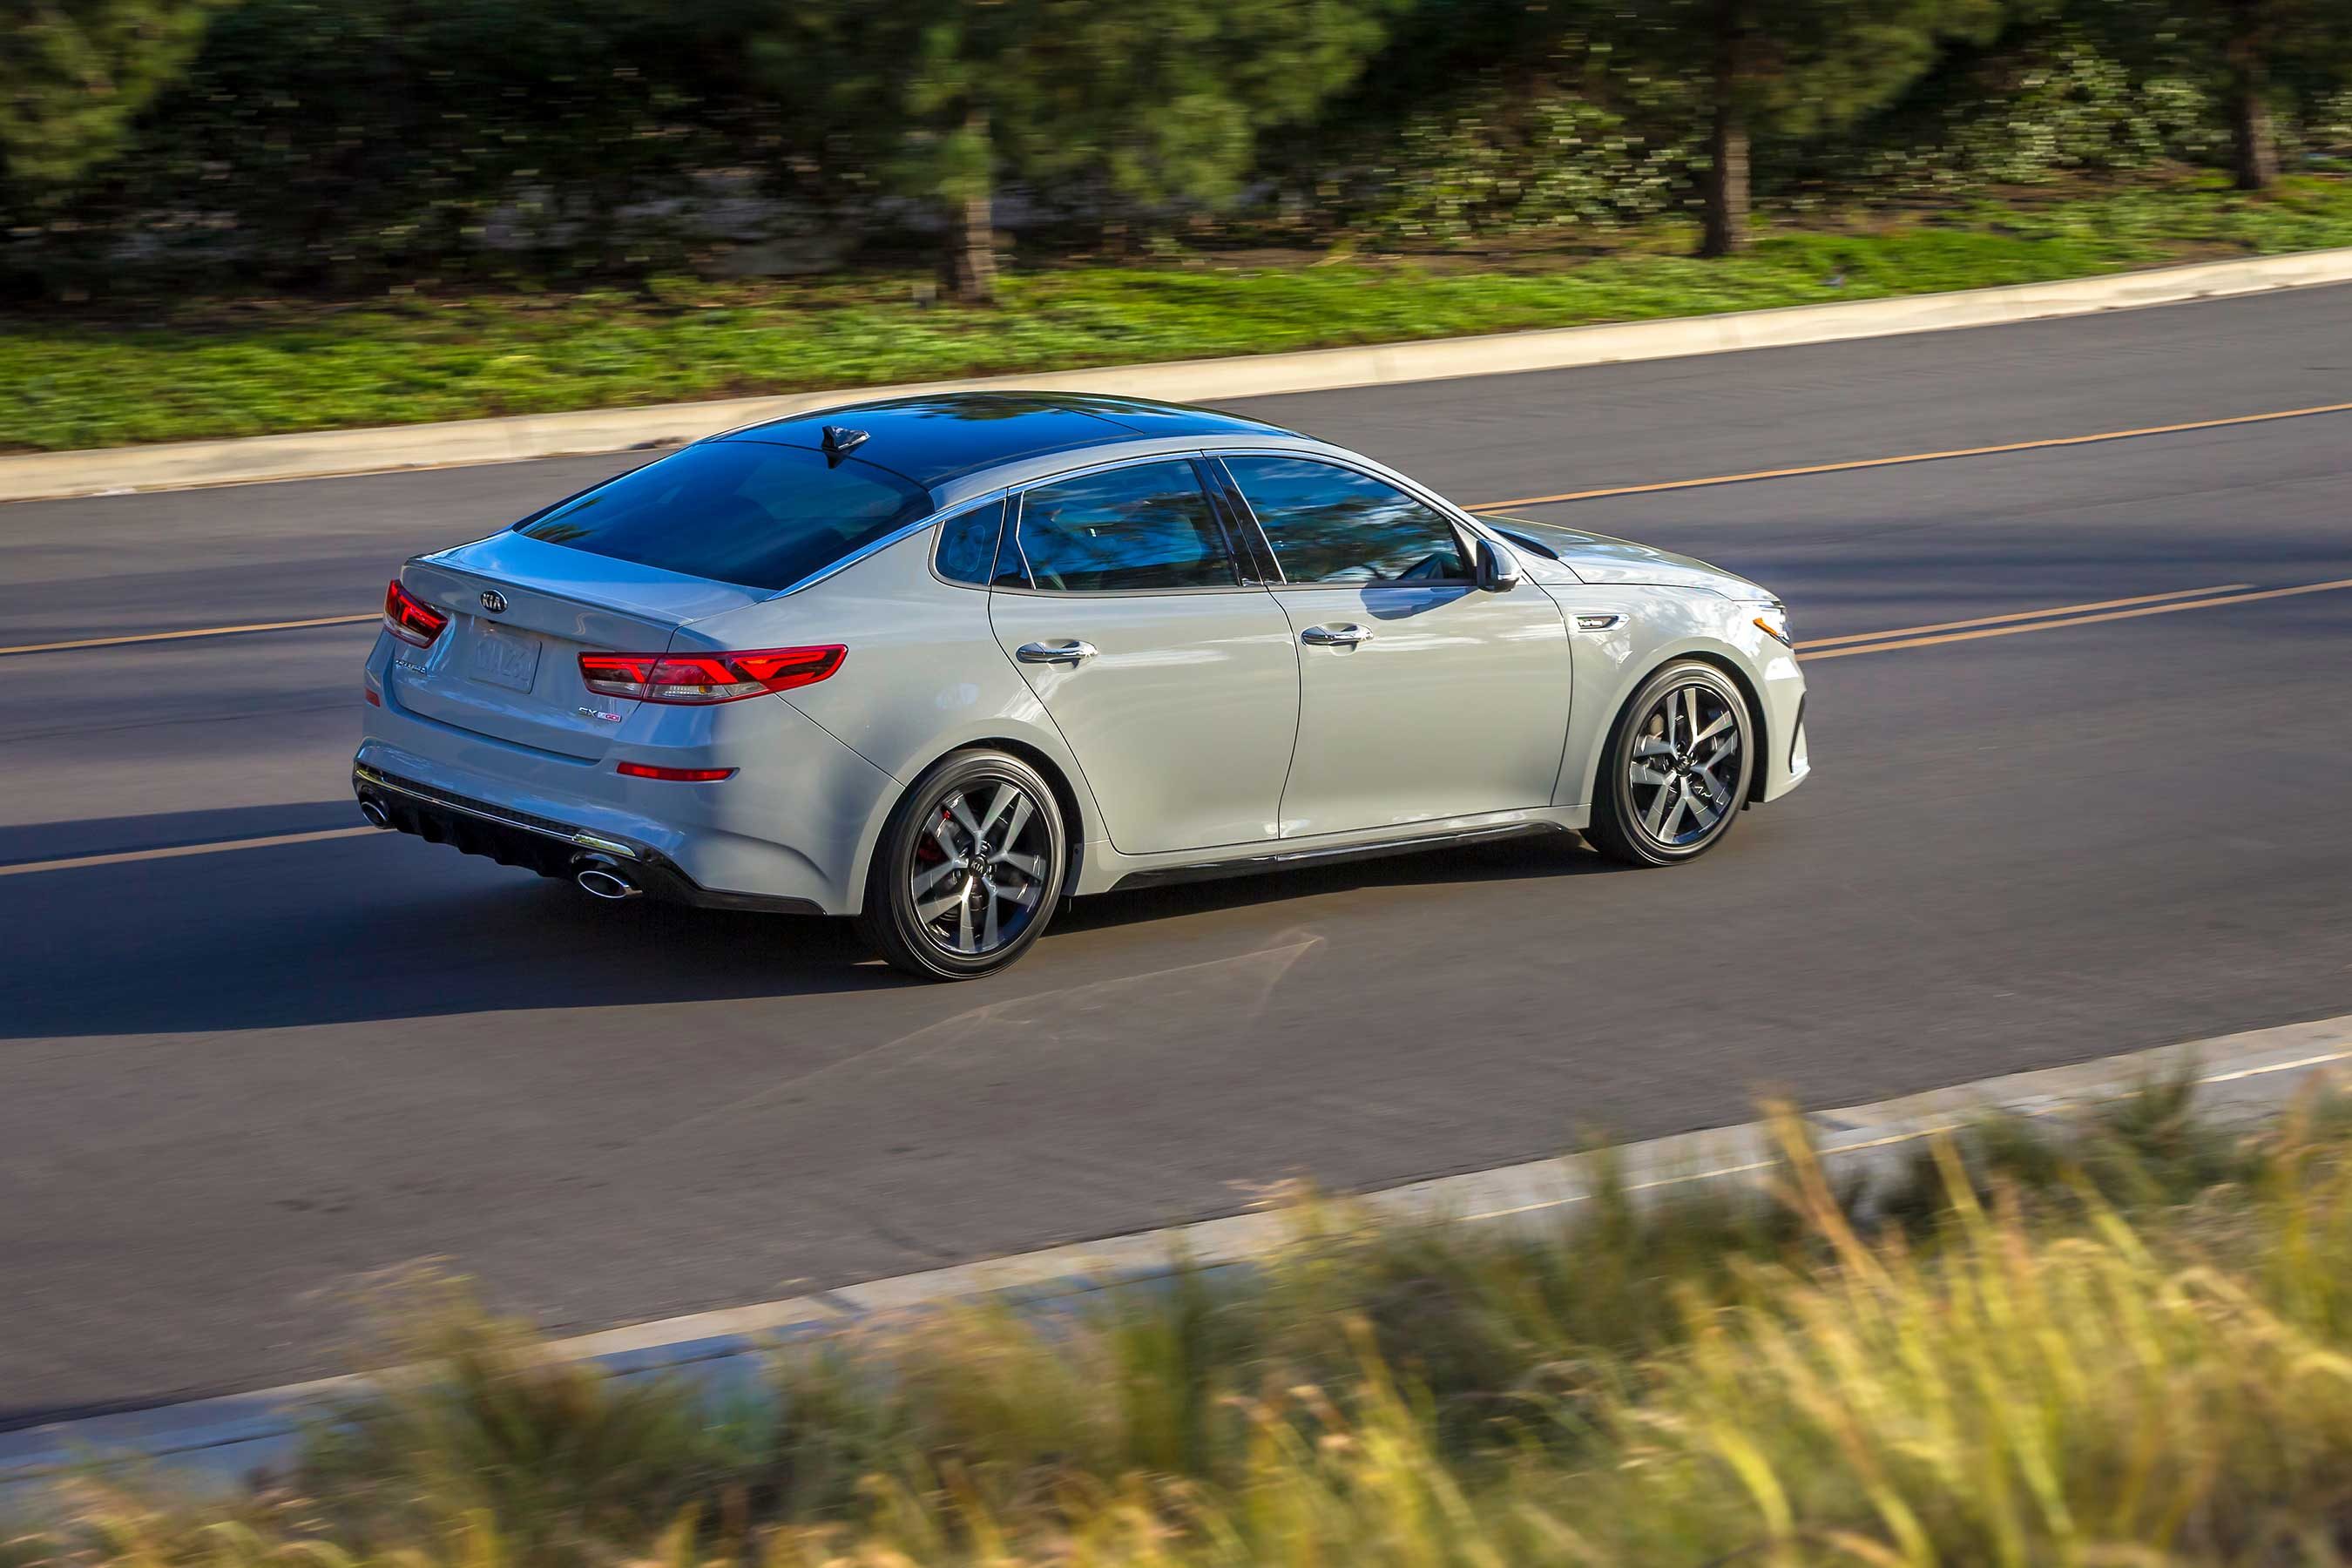 Brimming with new technology and features, the redesigned 2019 Kia Optima continues its run as a compelling alternative in the midsize sedan segment.